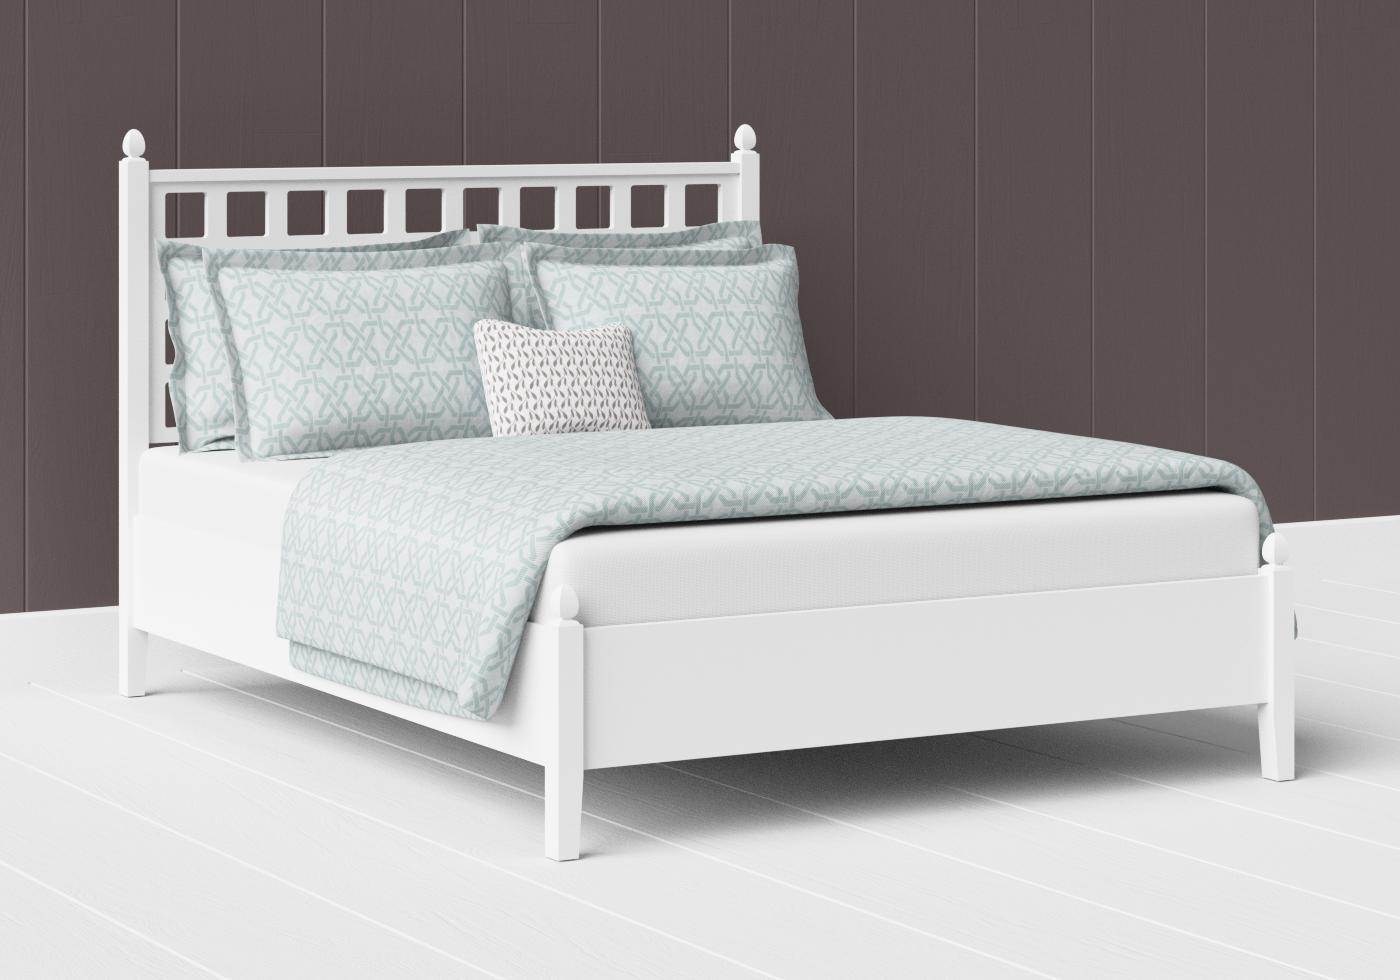 Hank low footend painted wood bed in satin white